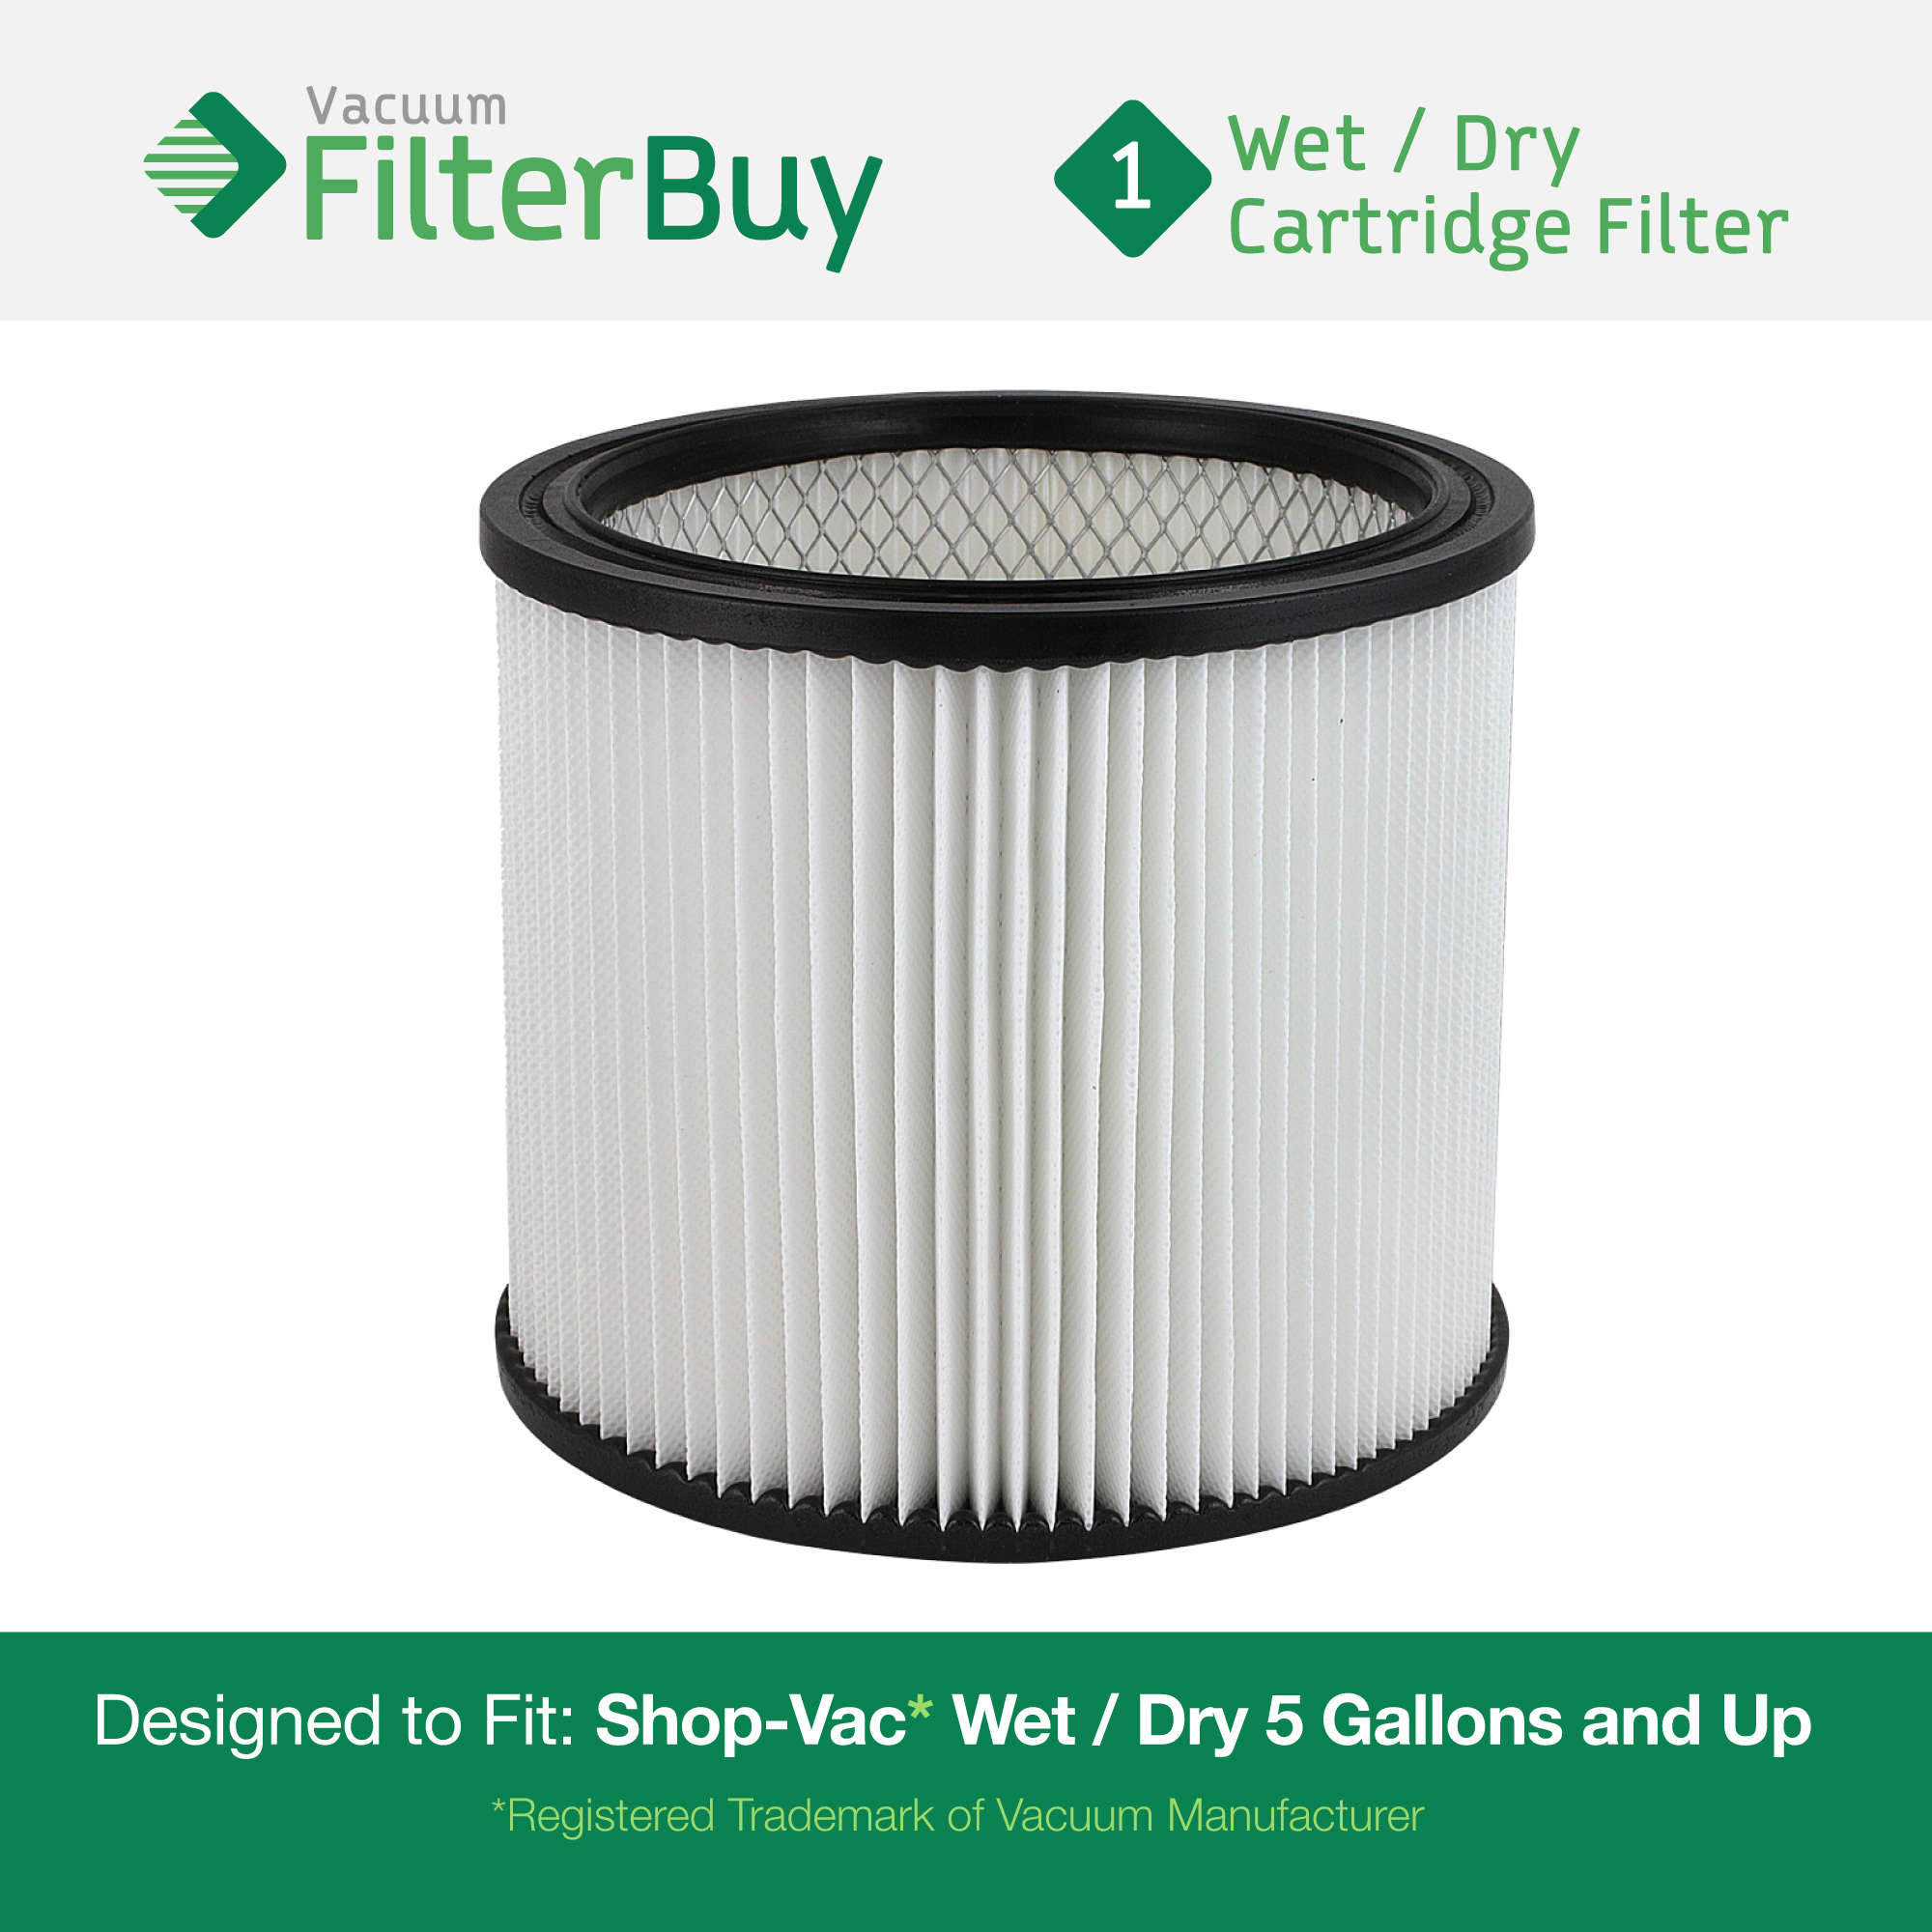 Shop-Vac 90304, 90304-00, 9030400, 903-04-00 Vacuum Cleaner Filter. Designed by FilterBuy to fit Shop-Vac Model 6L550, Genie 88-2340-02 (88234002) and Hang Up Vacuum 9039800.